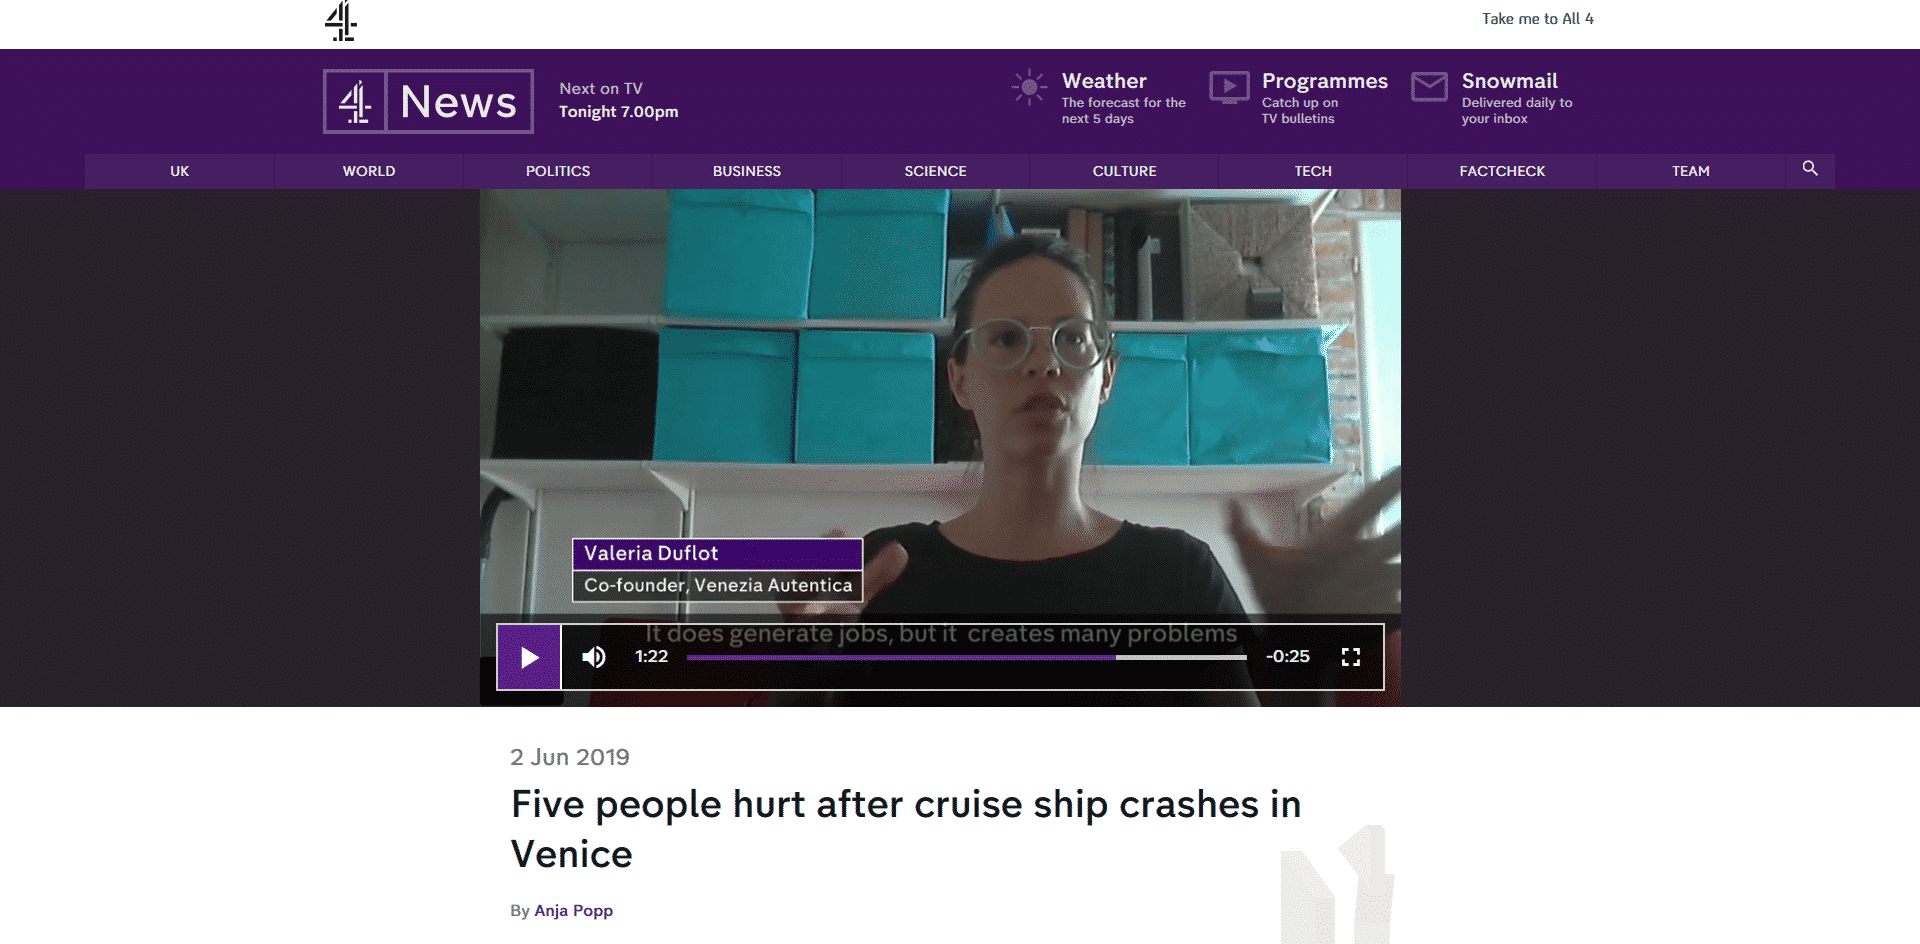 Channel 4 News Interviews Valeria Duflot About Cruise Ship Incident - Venezia Autentica | Discover and Support the Authentic Venice -